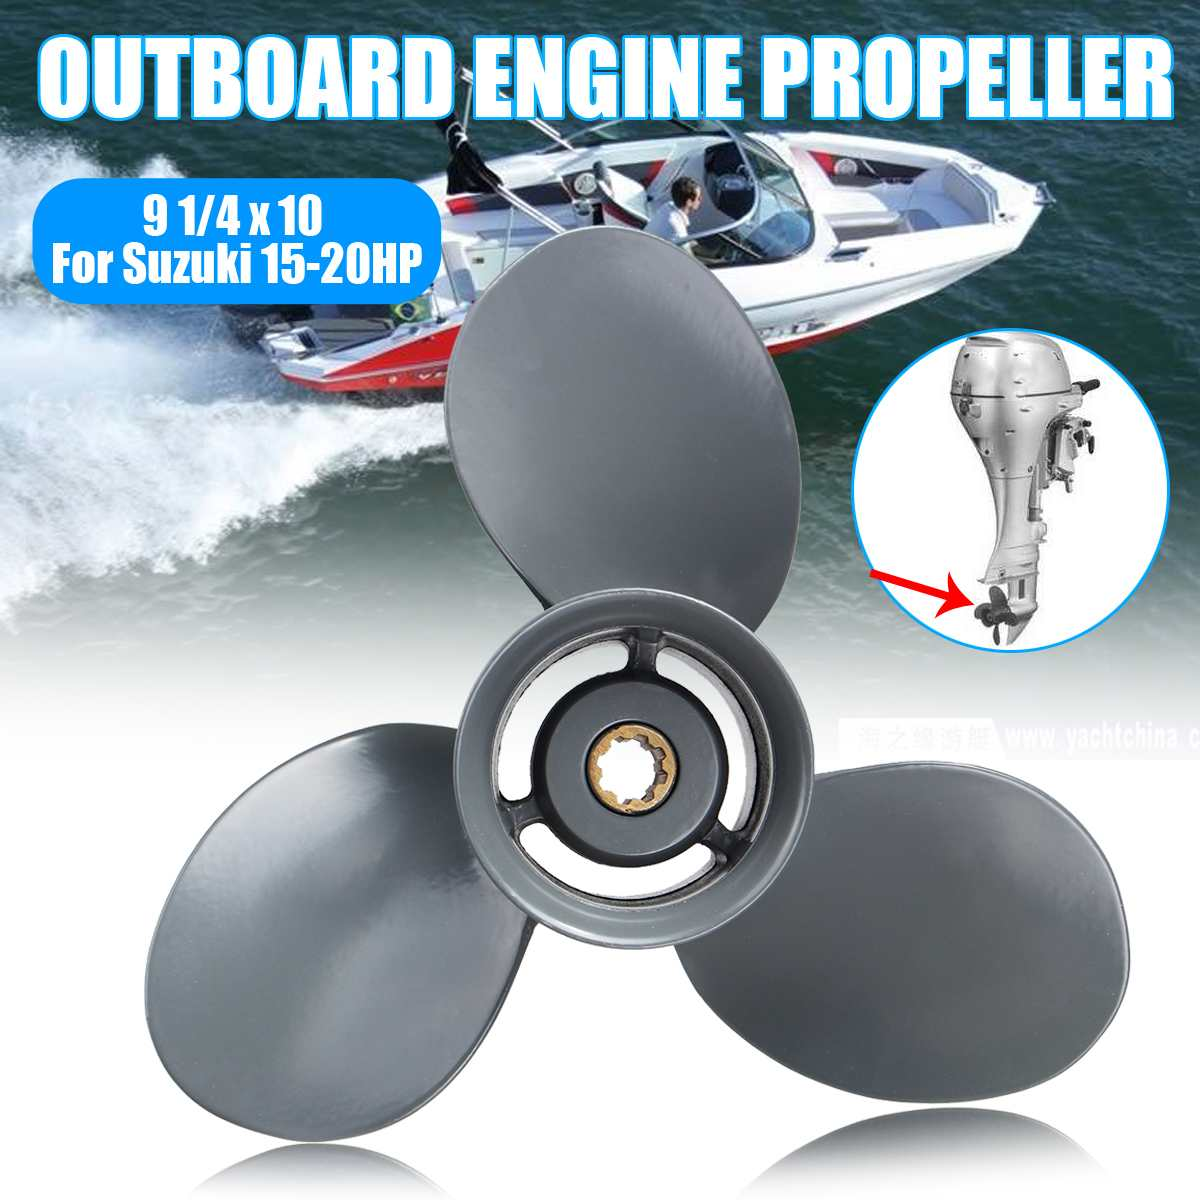 Marine Boat Engine Propeller 9 1/4 x 10 Outboard Engine Propeller For Honda 15-20HPMarine Boat Engine Propeller 9 1/4 x 10 Outboard Engine Propeller For Honda 15-20HP